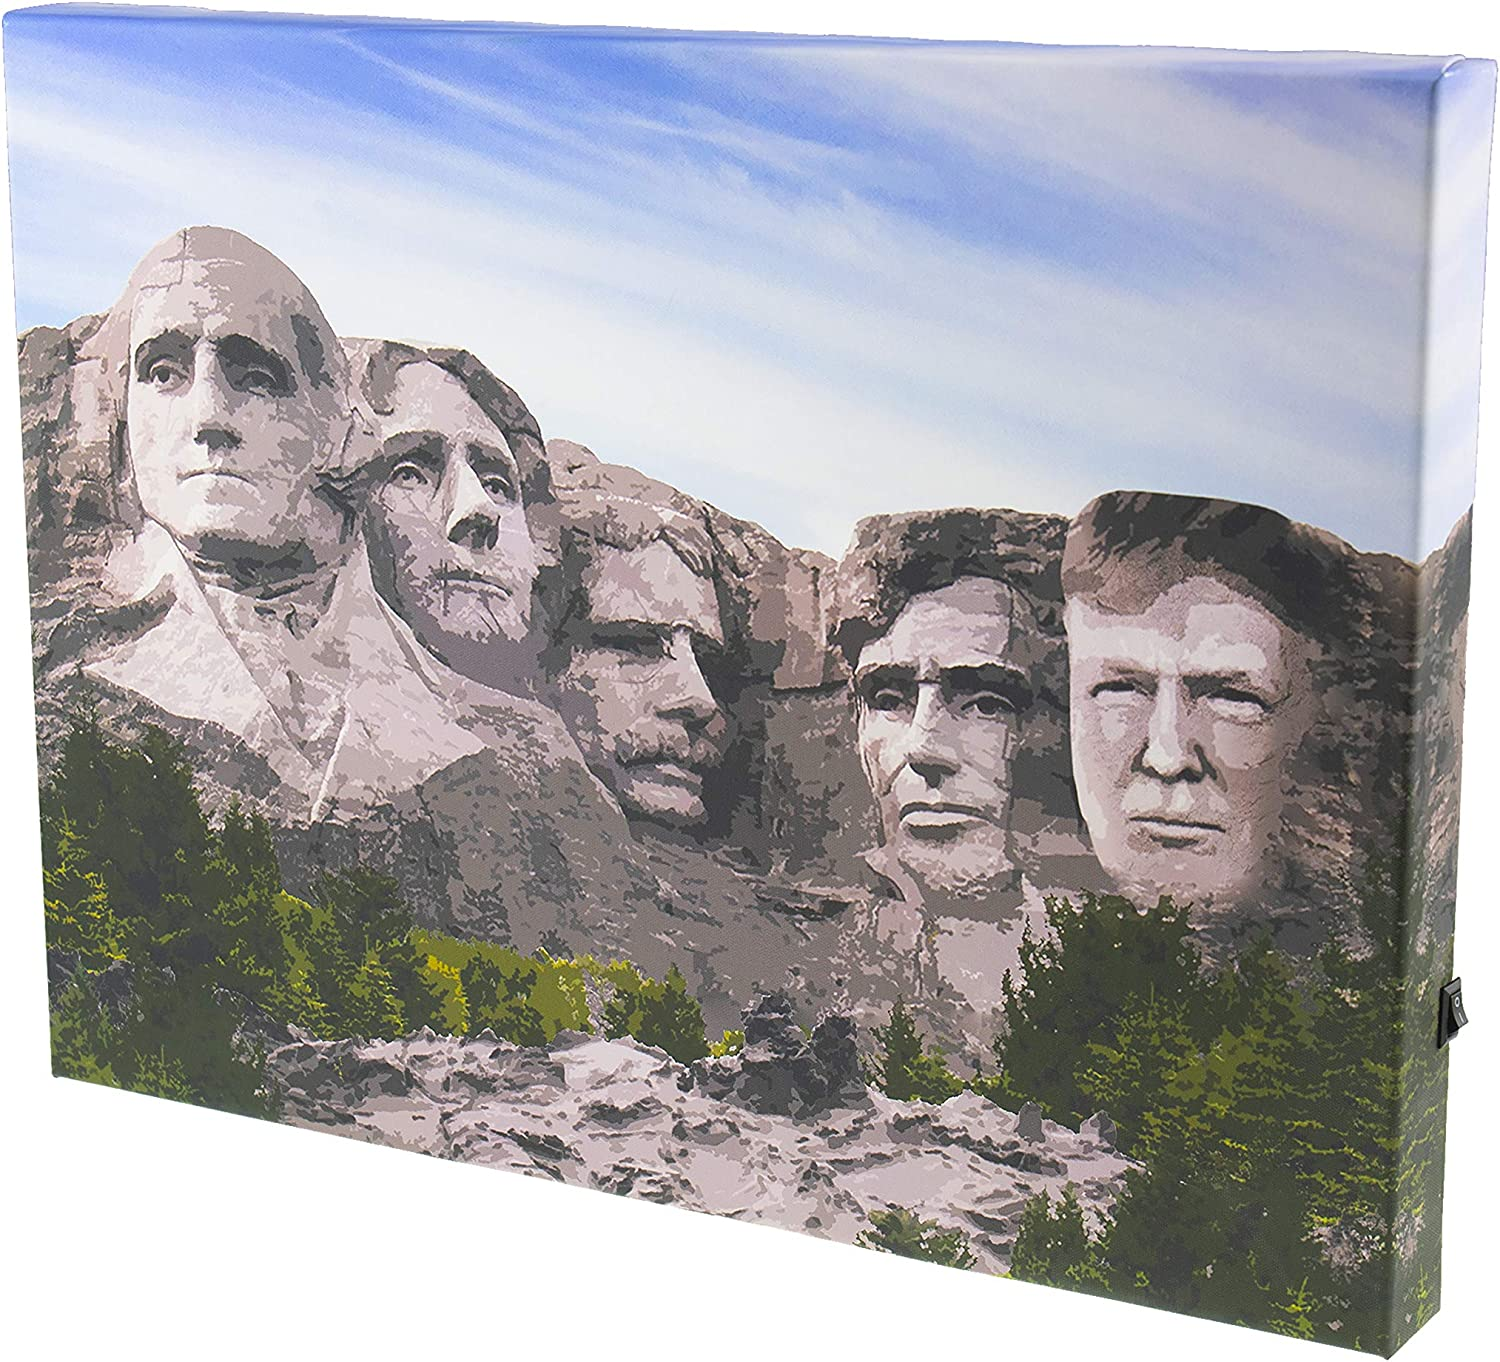 Clever Creations 12 x 16 Inch President Donald Trump on Mount Rushmore LED Light Funny Wall Art Canvas Poster